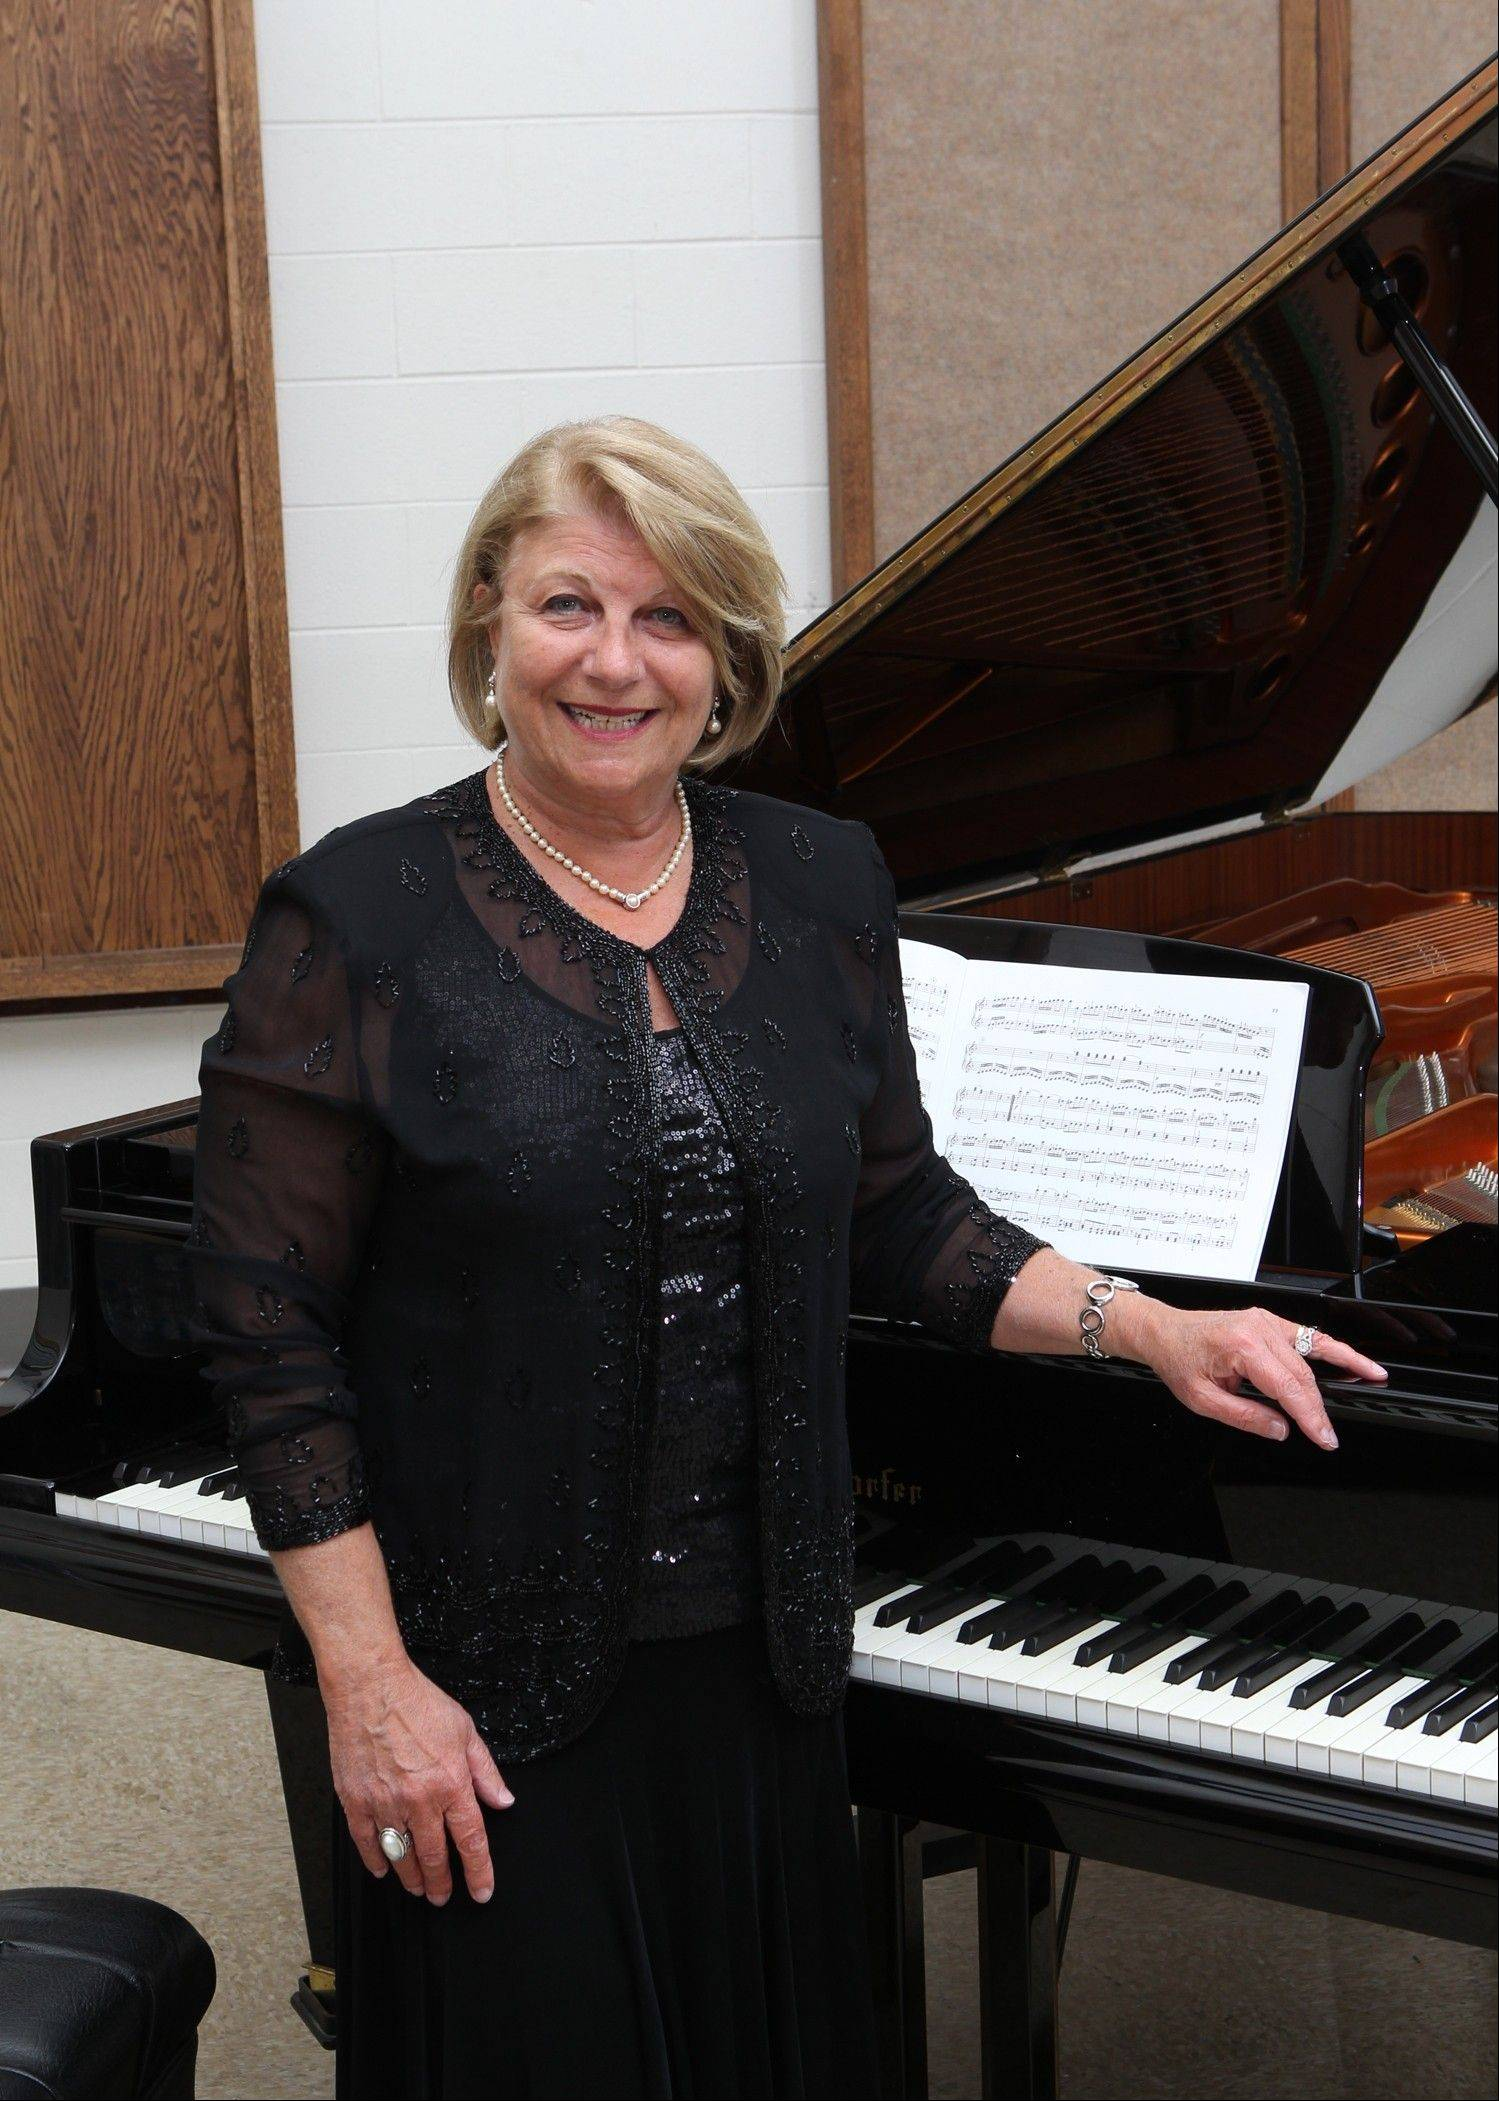 This year, the Six Piano Ensemble will honor Beatriz Levi of Northfield, who is celebrating her 25th year as a member of the group.